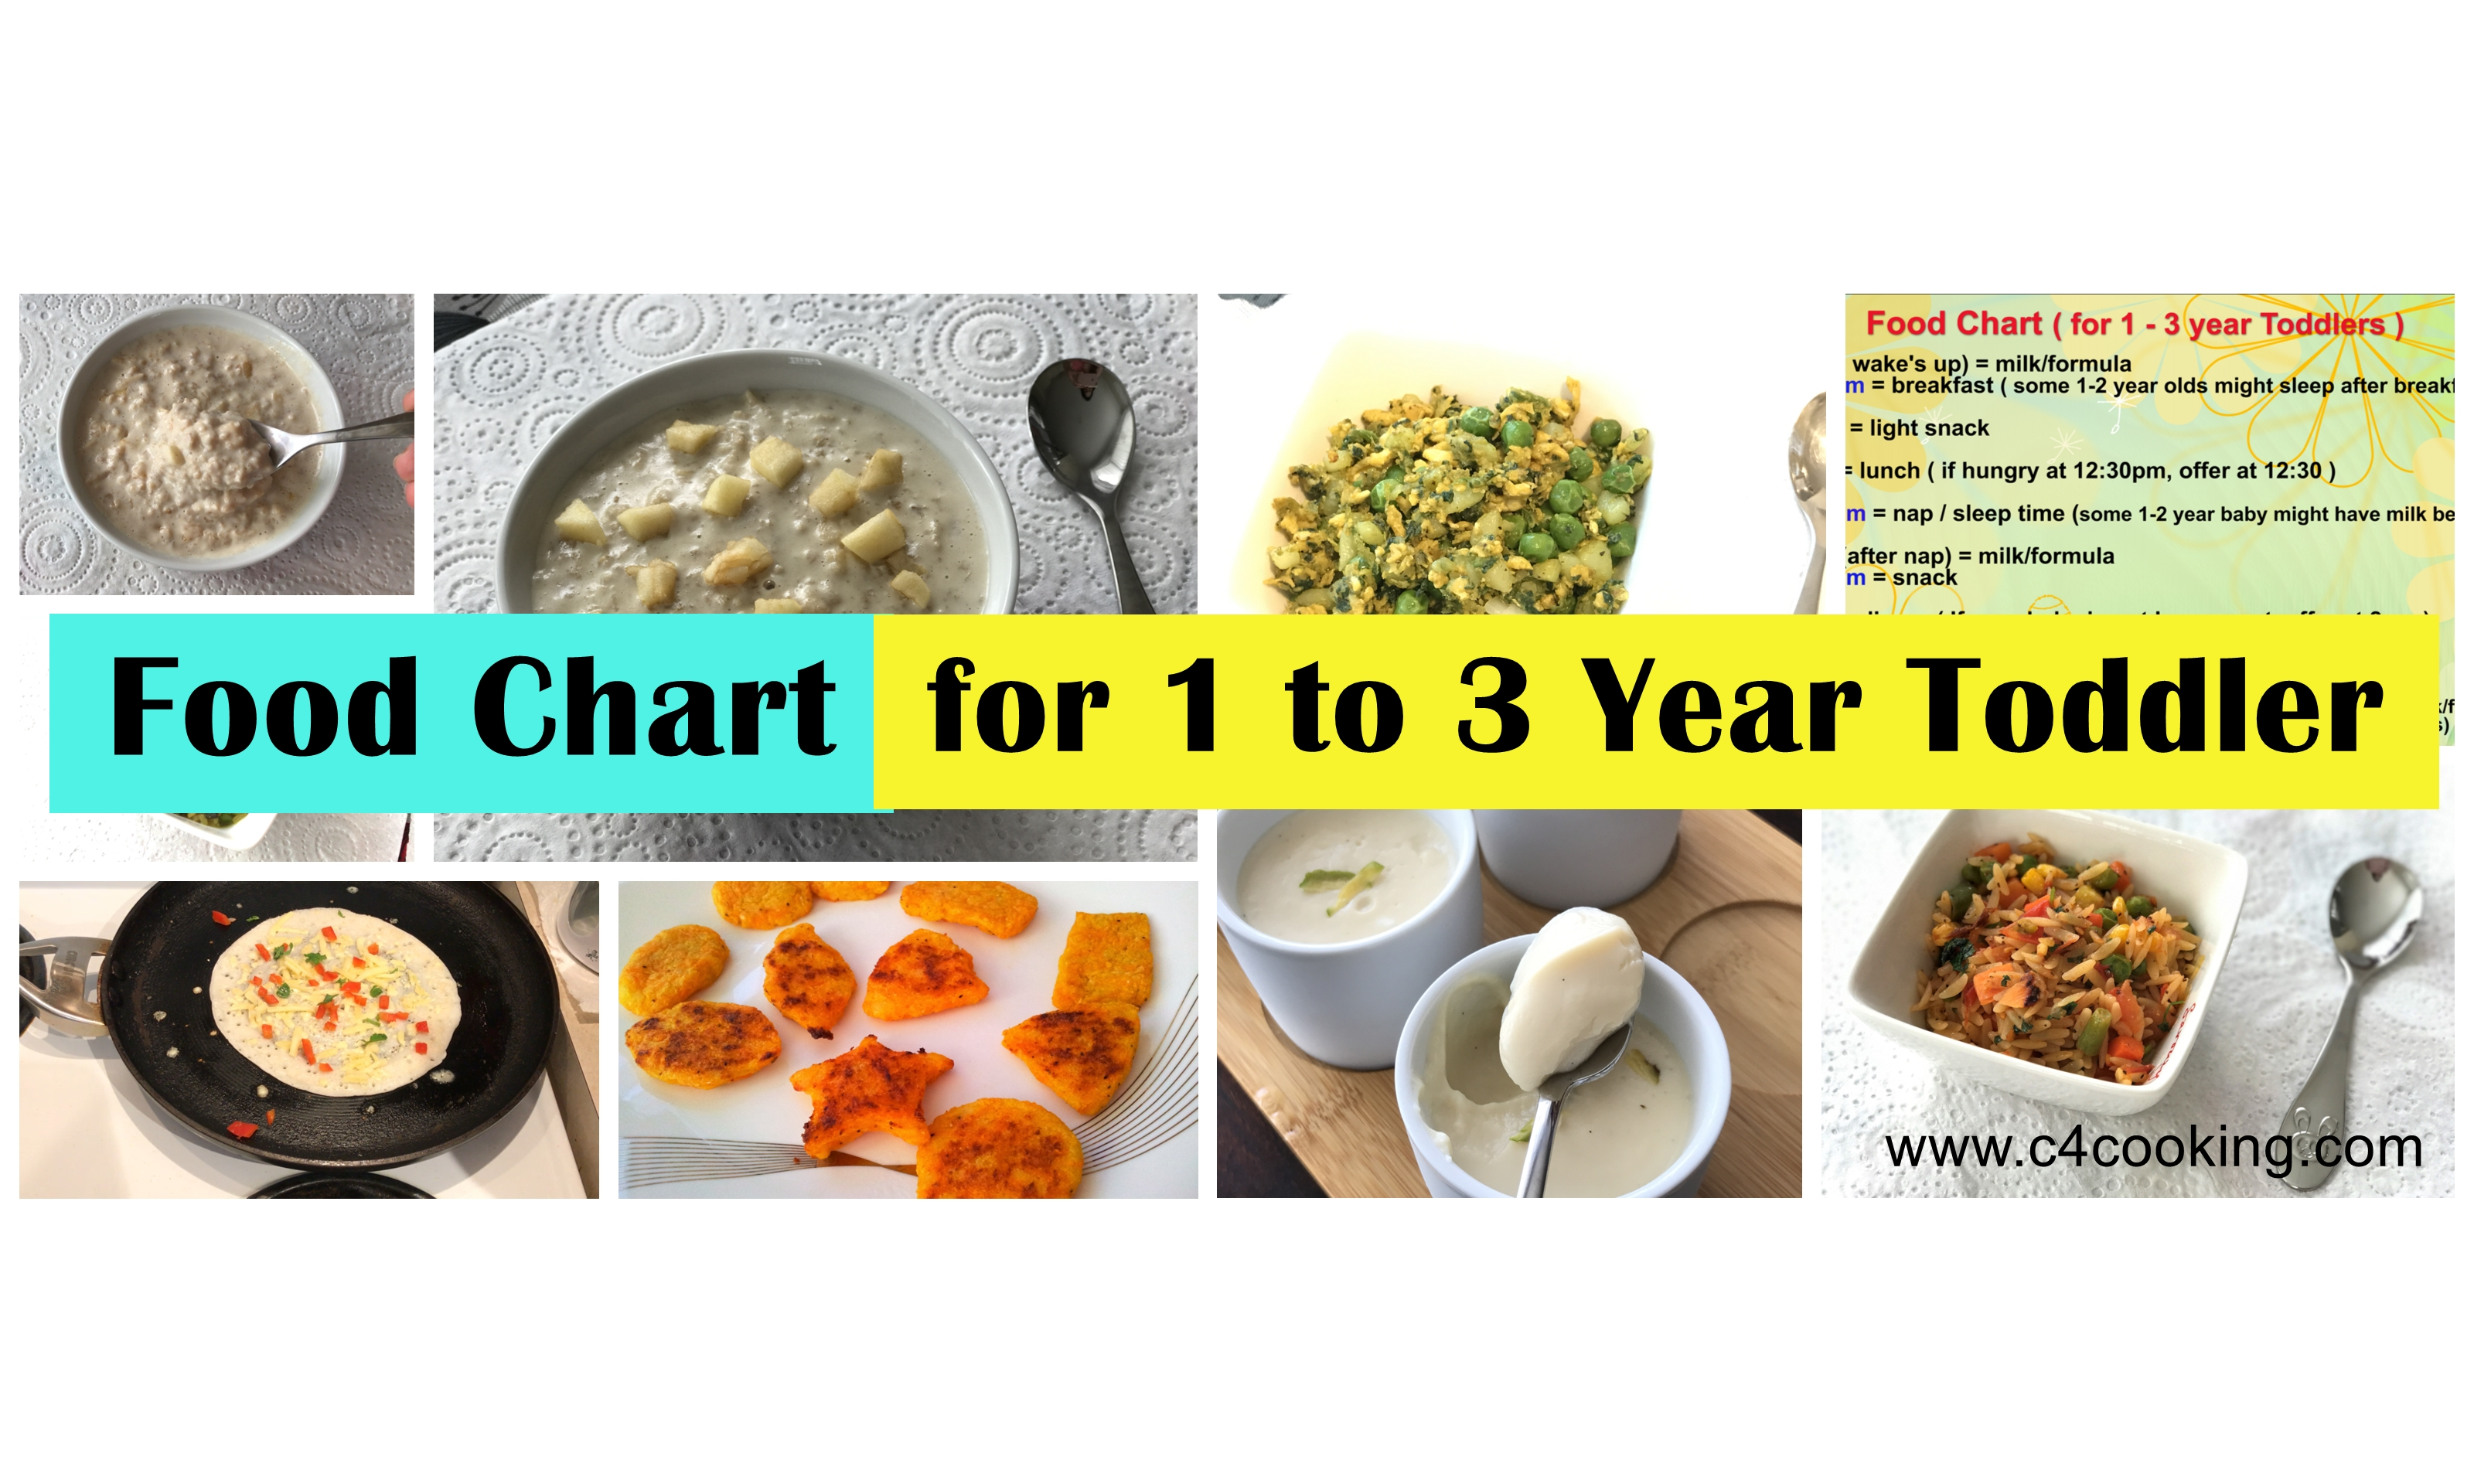 daily food routine for 1year toddler, foodchart for 2year toddler, toddler food chart